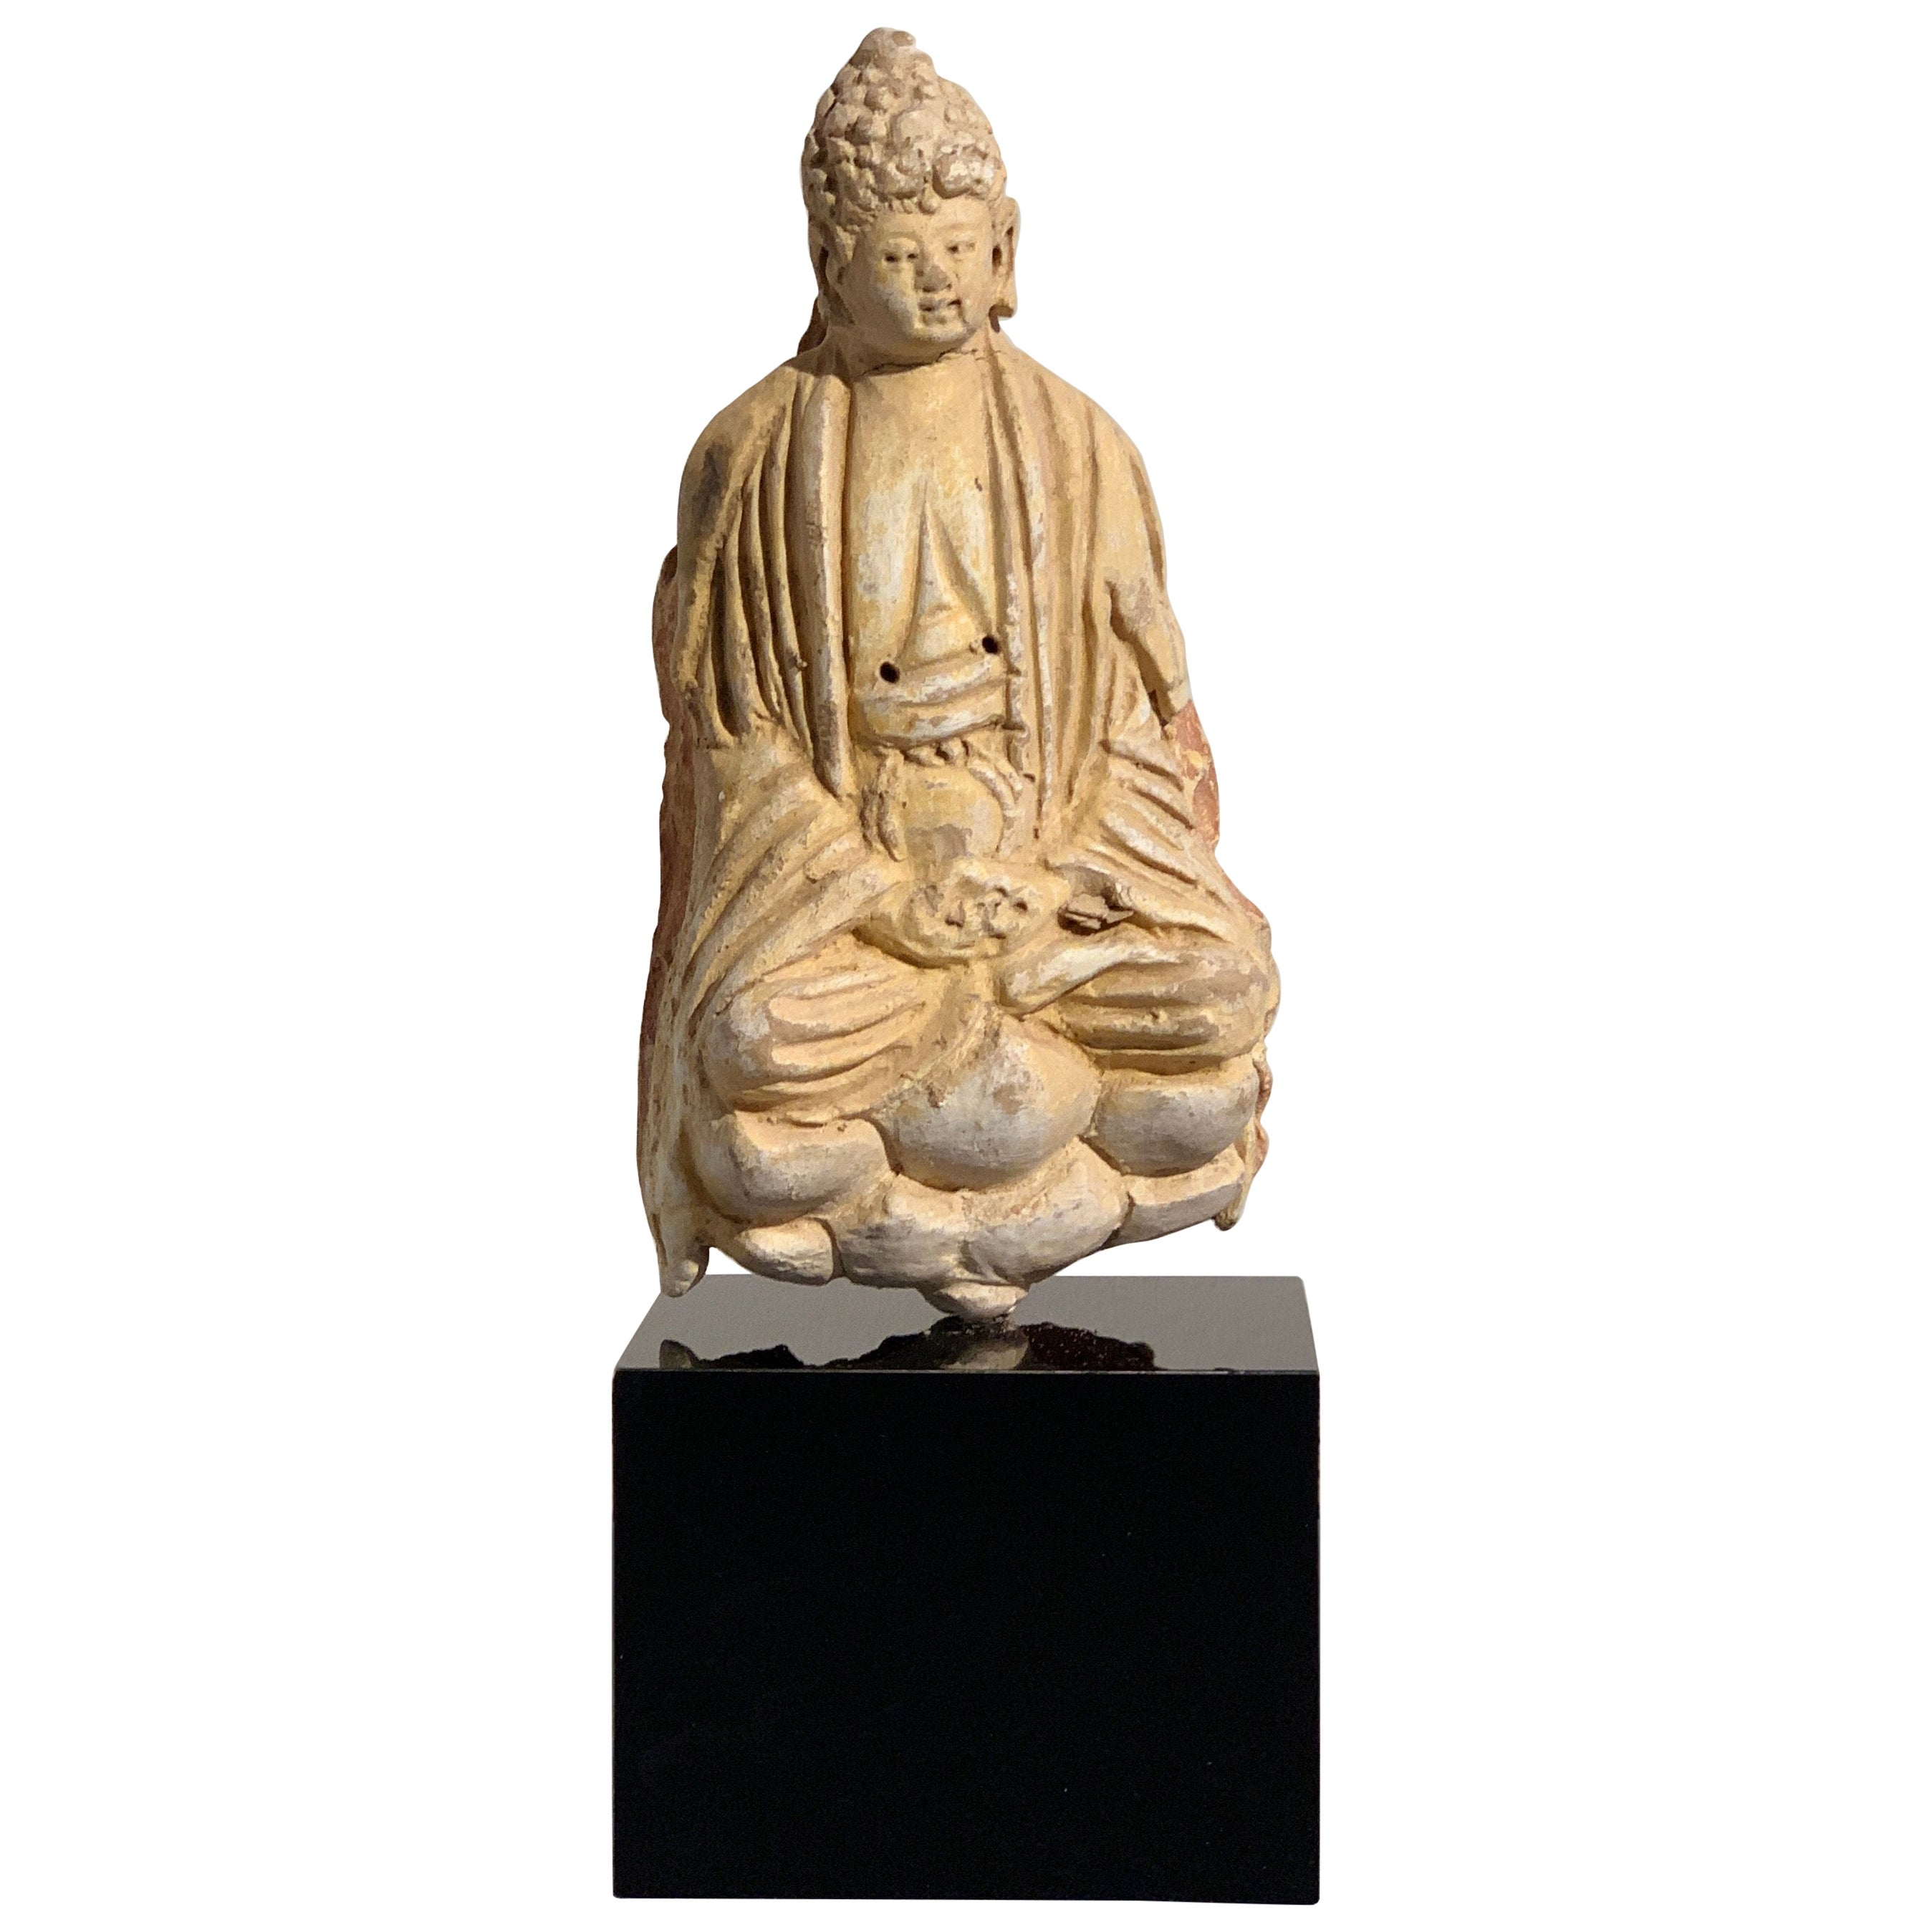 Chinese Stucco Seated Buddha, Yuan to Ming Dynasty, Mid-14th Century